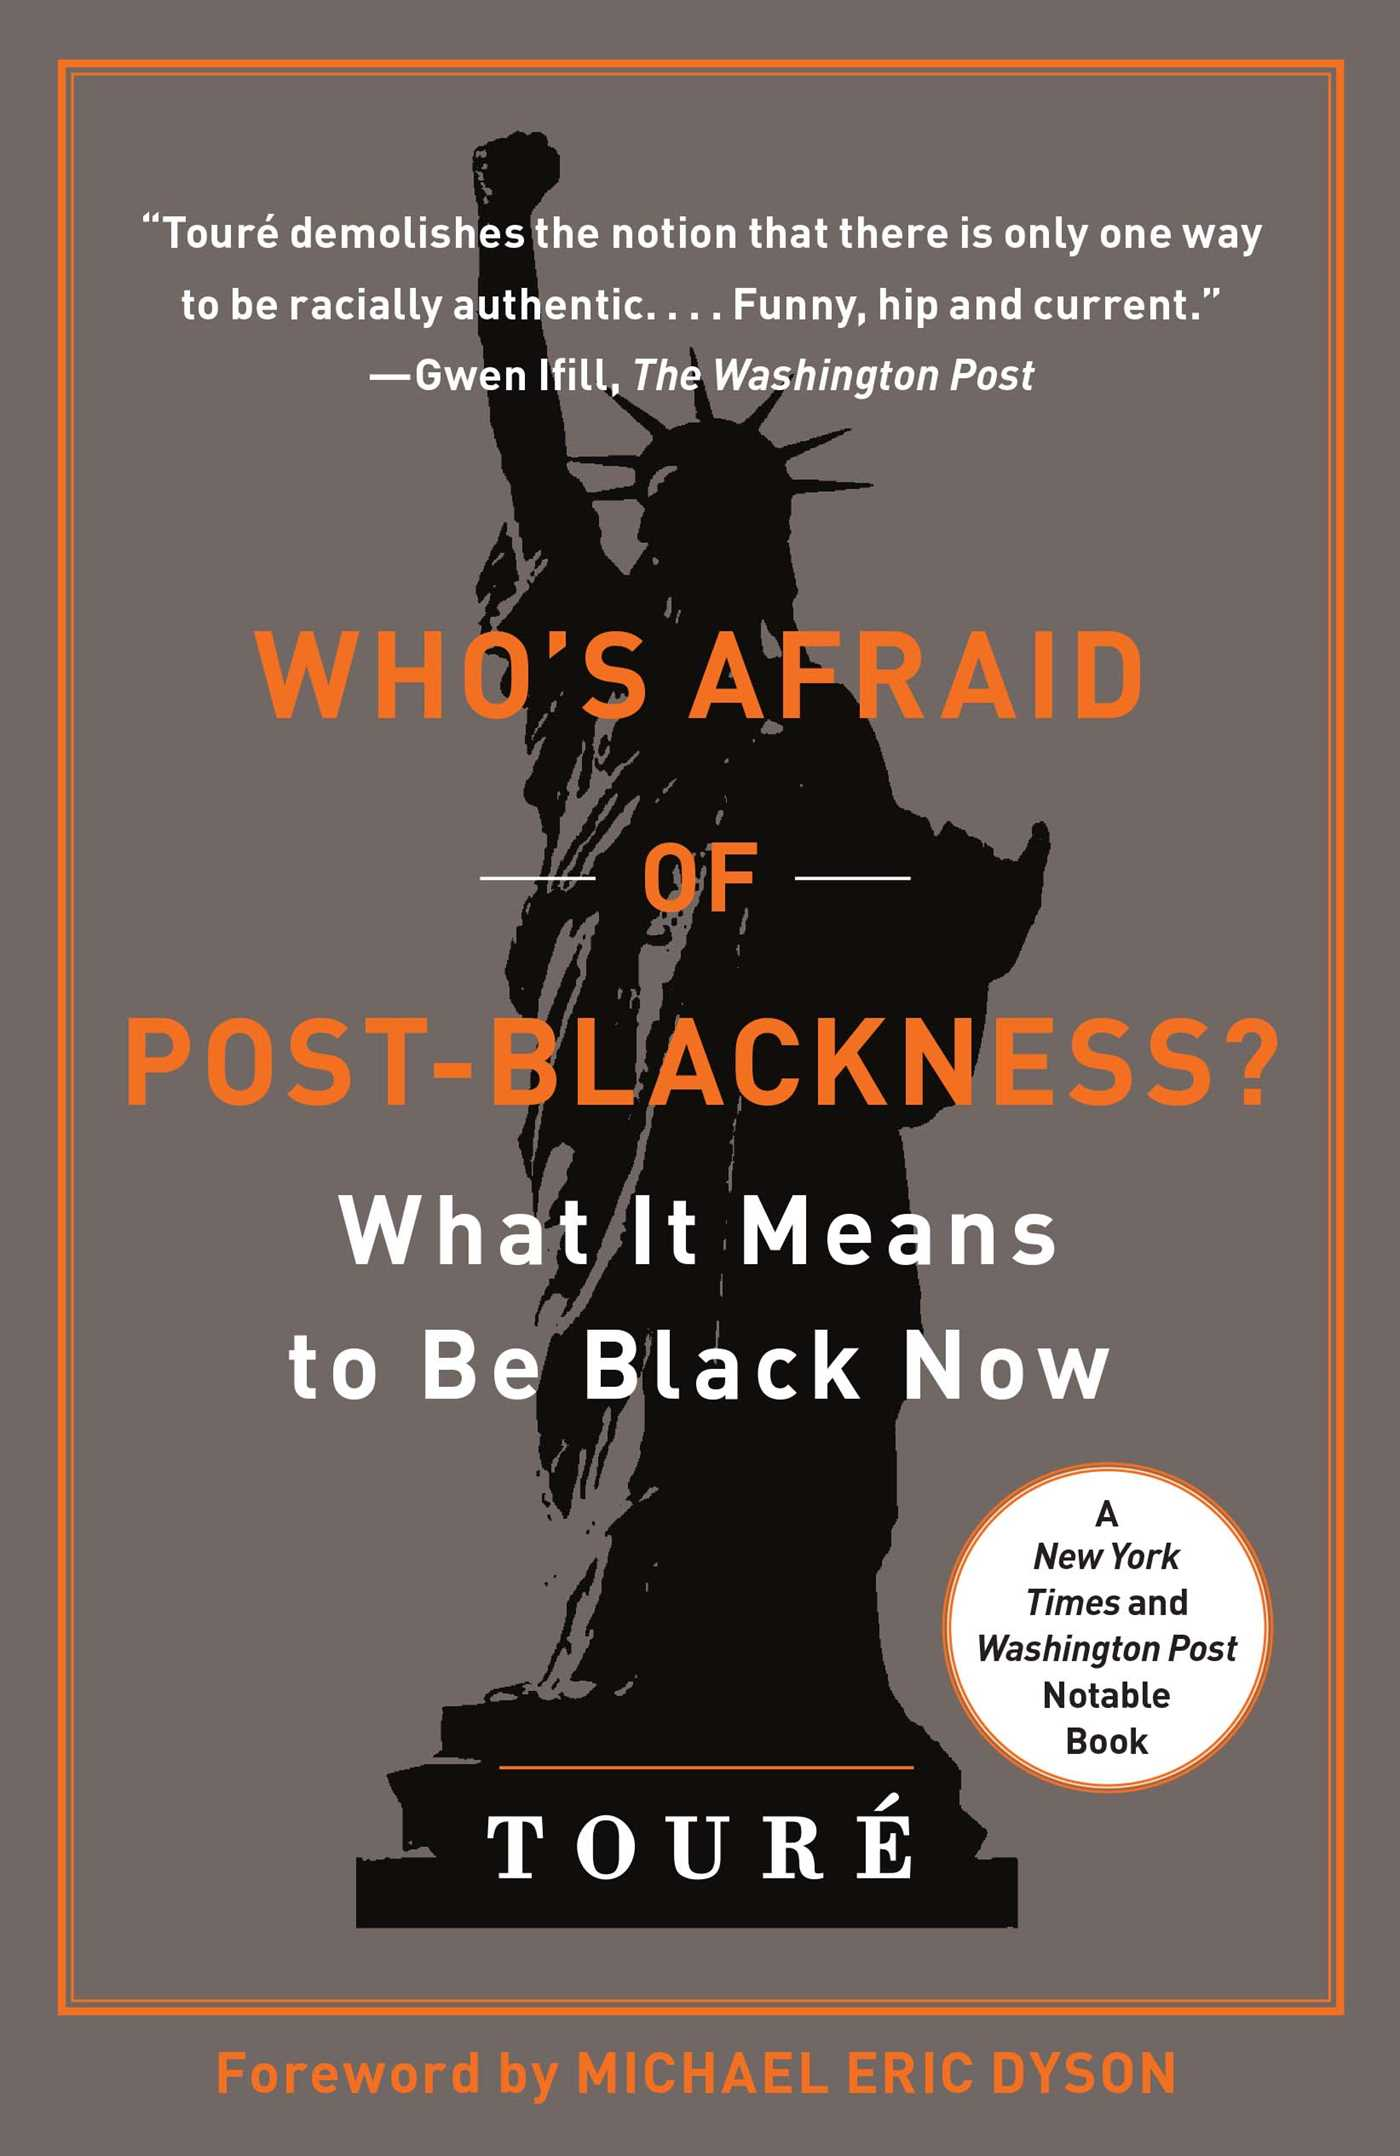 Whos-afraid-of-post-blackness-9781439177563_hr